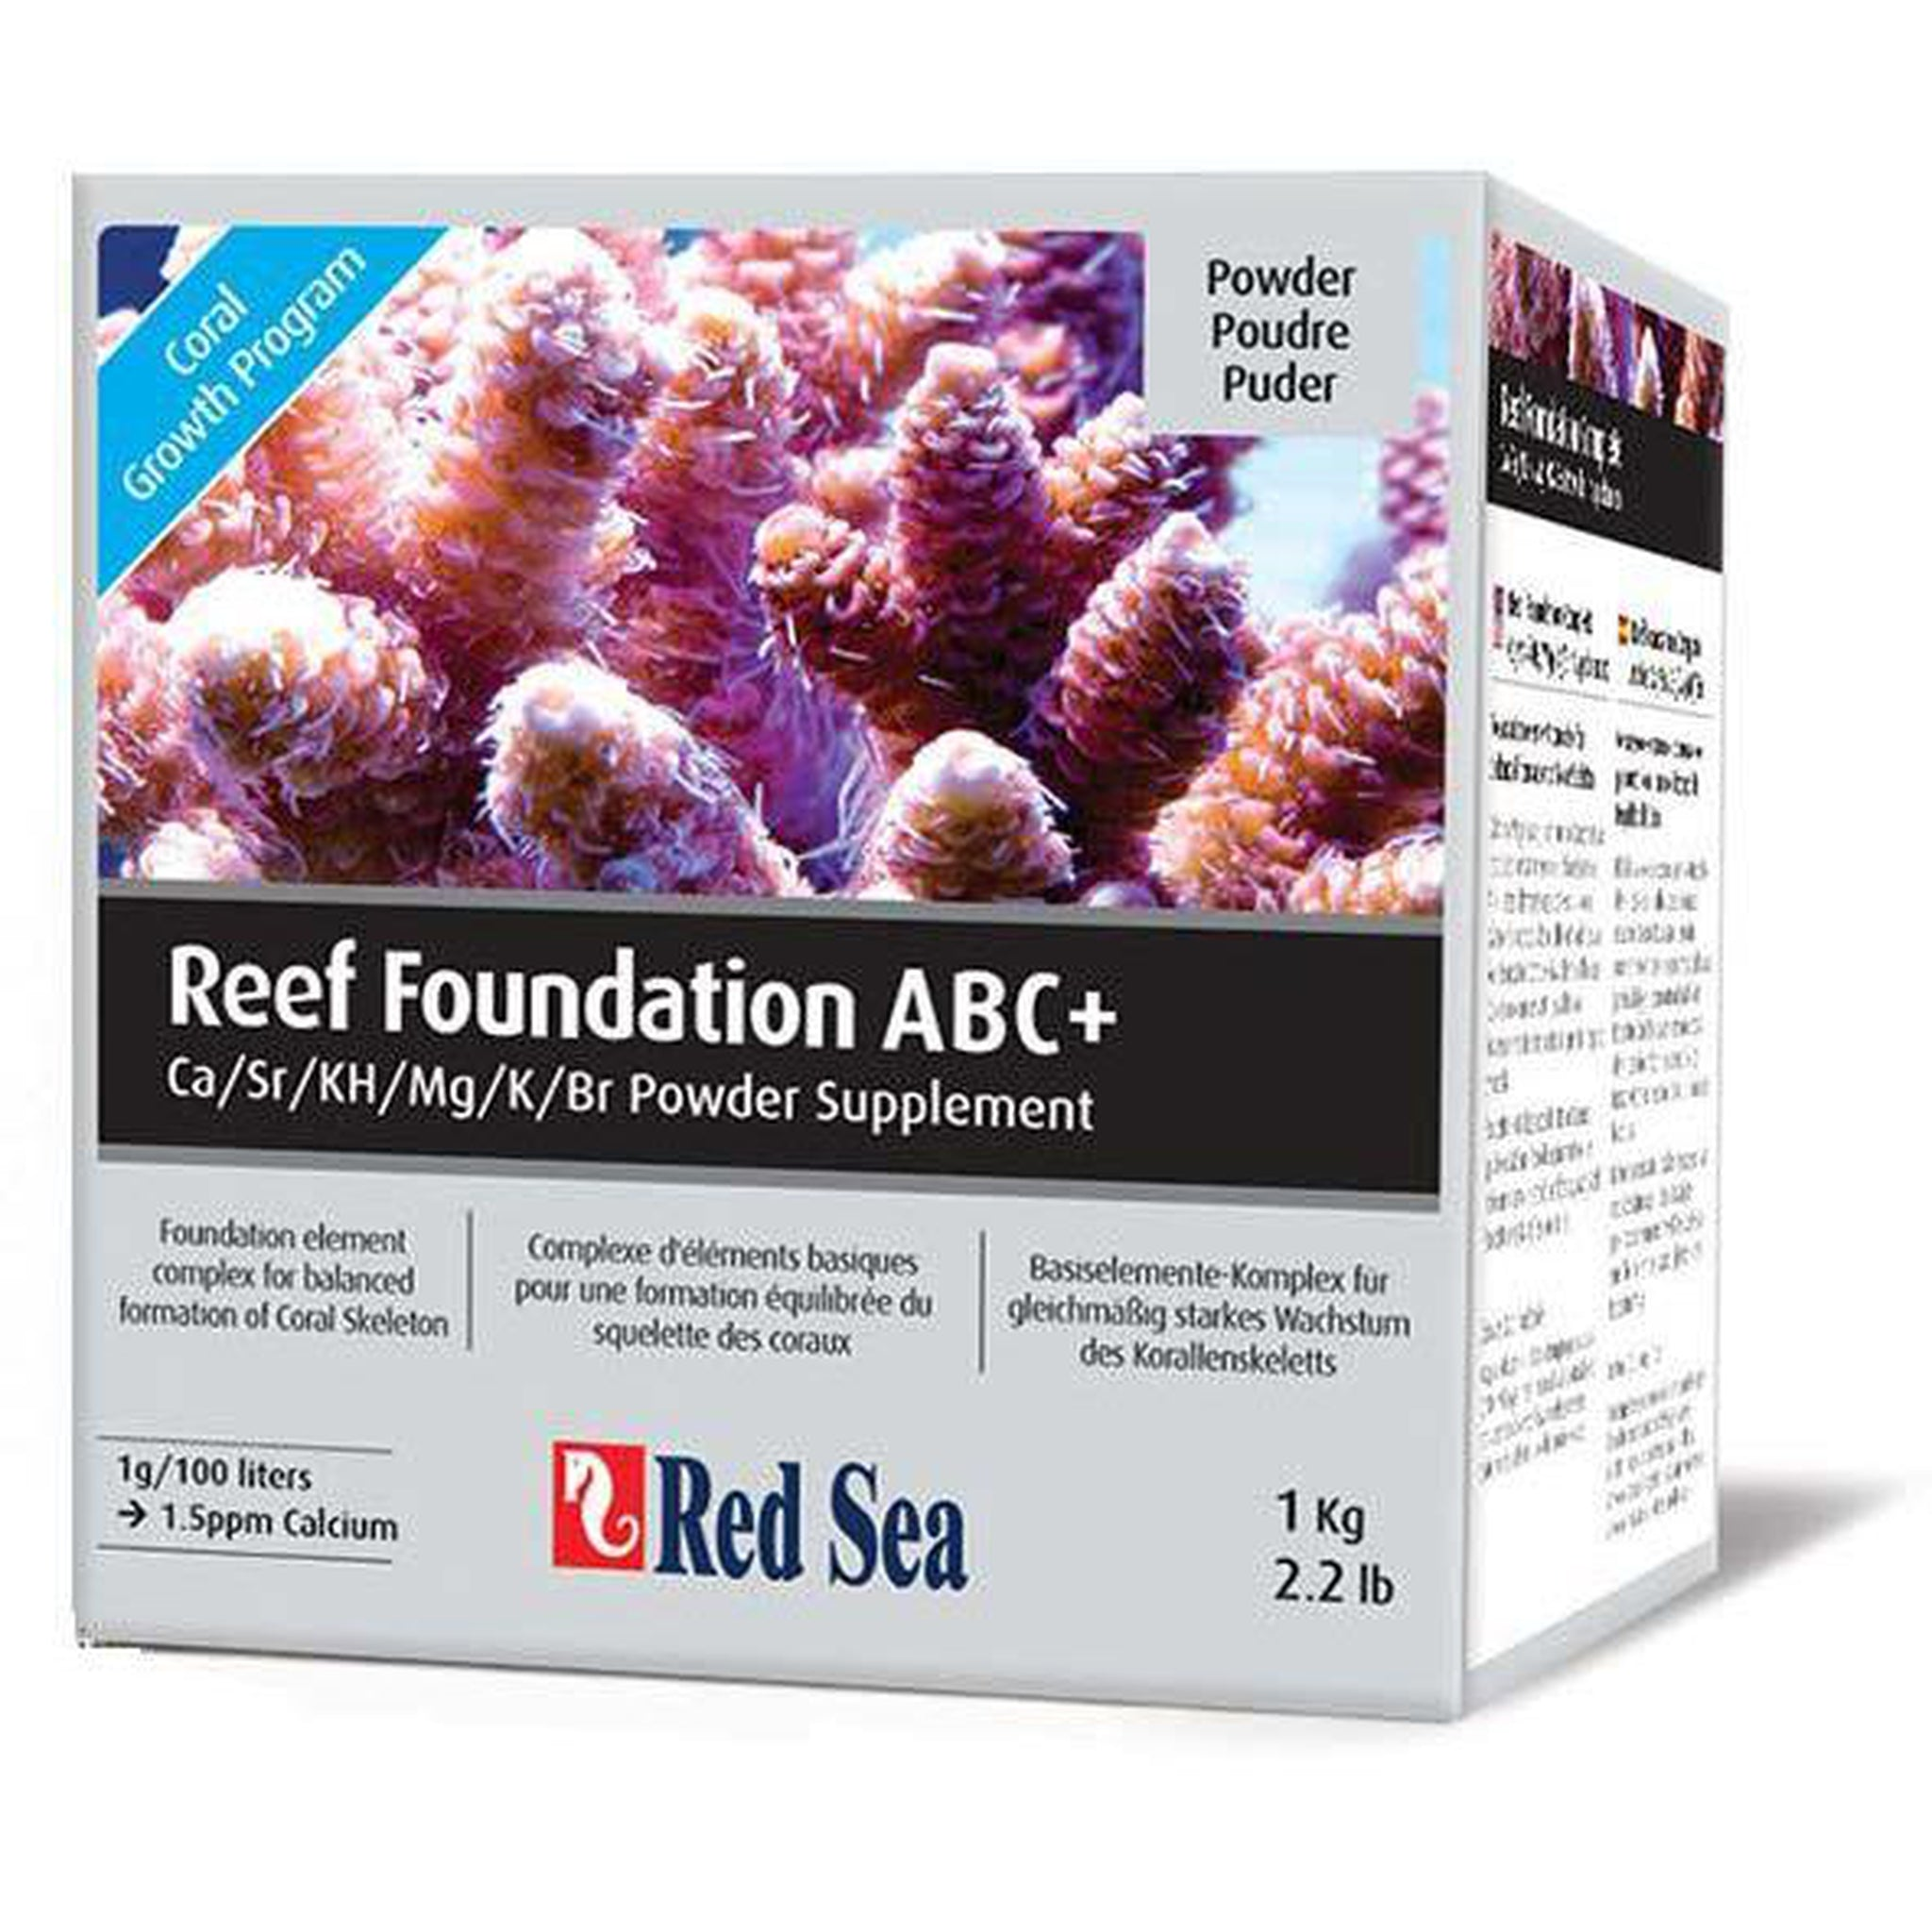 red_sea_reef_foundation_abc+_RH8WUXRRHZ1A.jpg